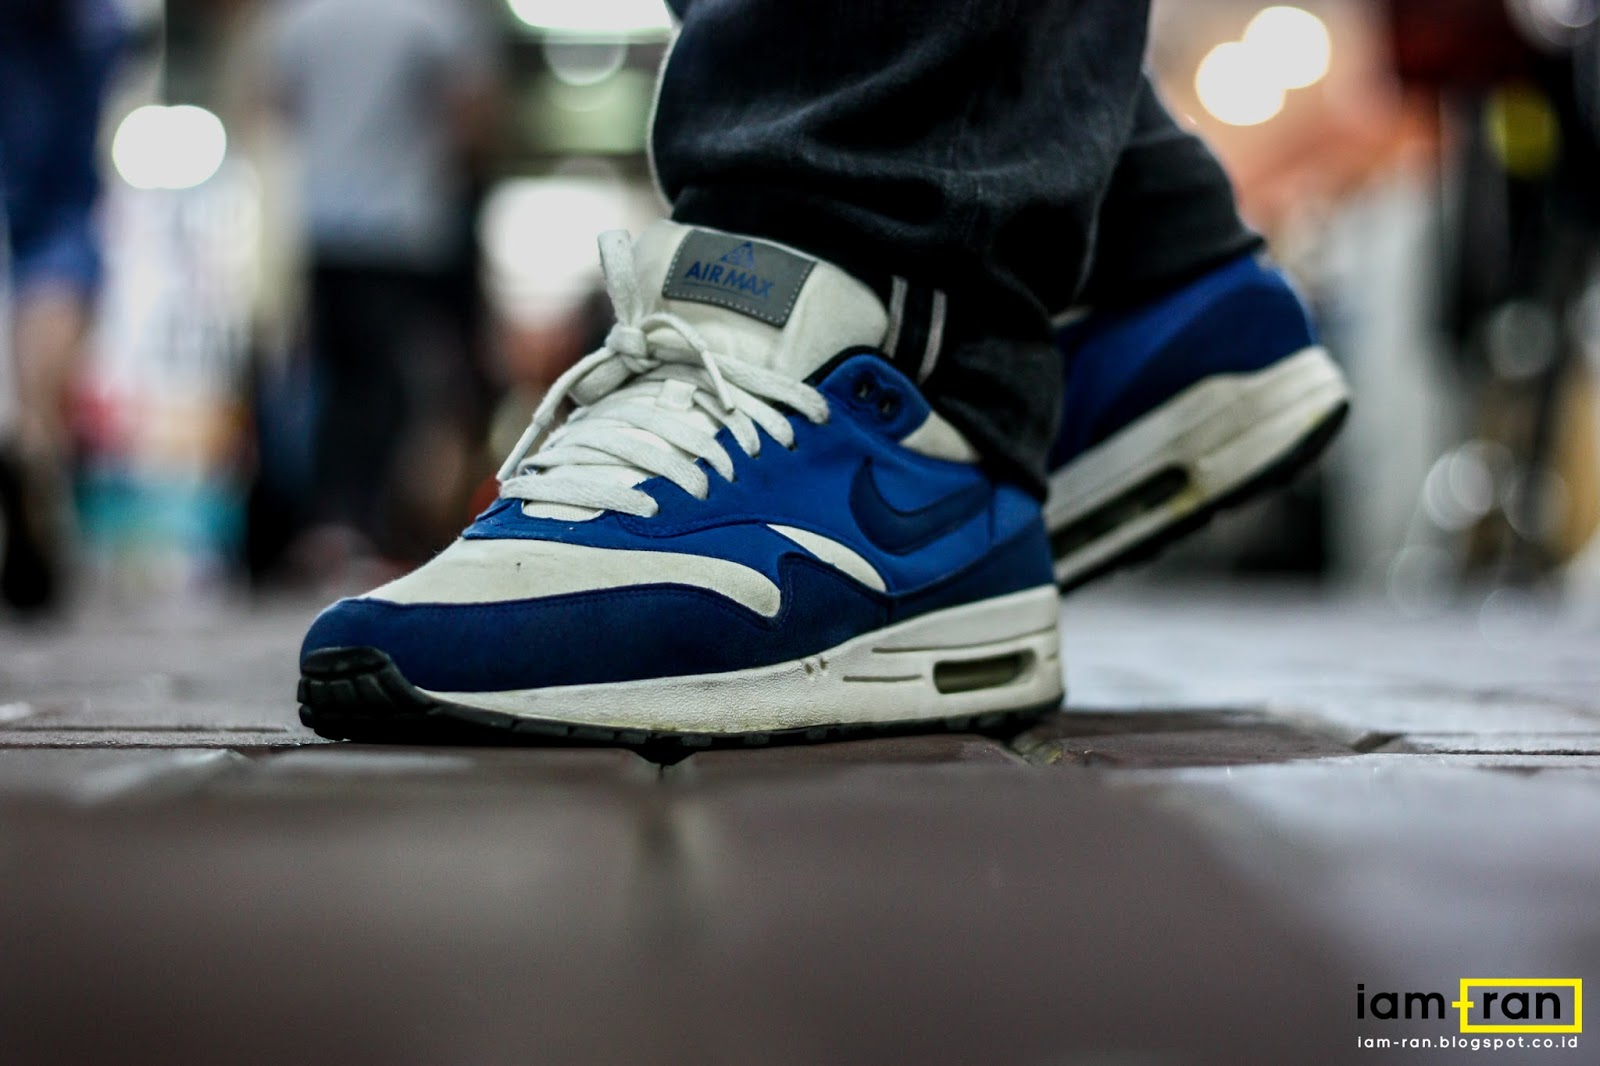 fb85b599b8 IAM-RAN: ON FEET : Nano - Nike Air max 1 ACG pack